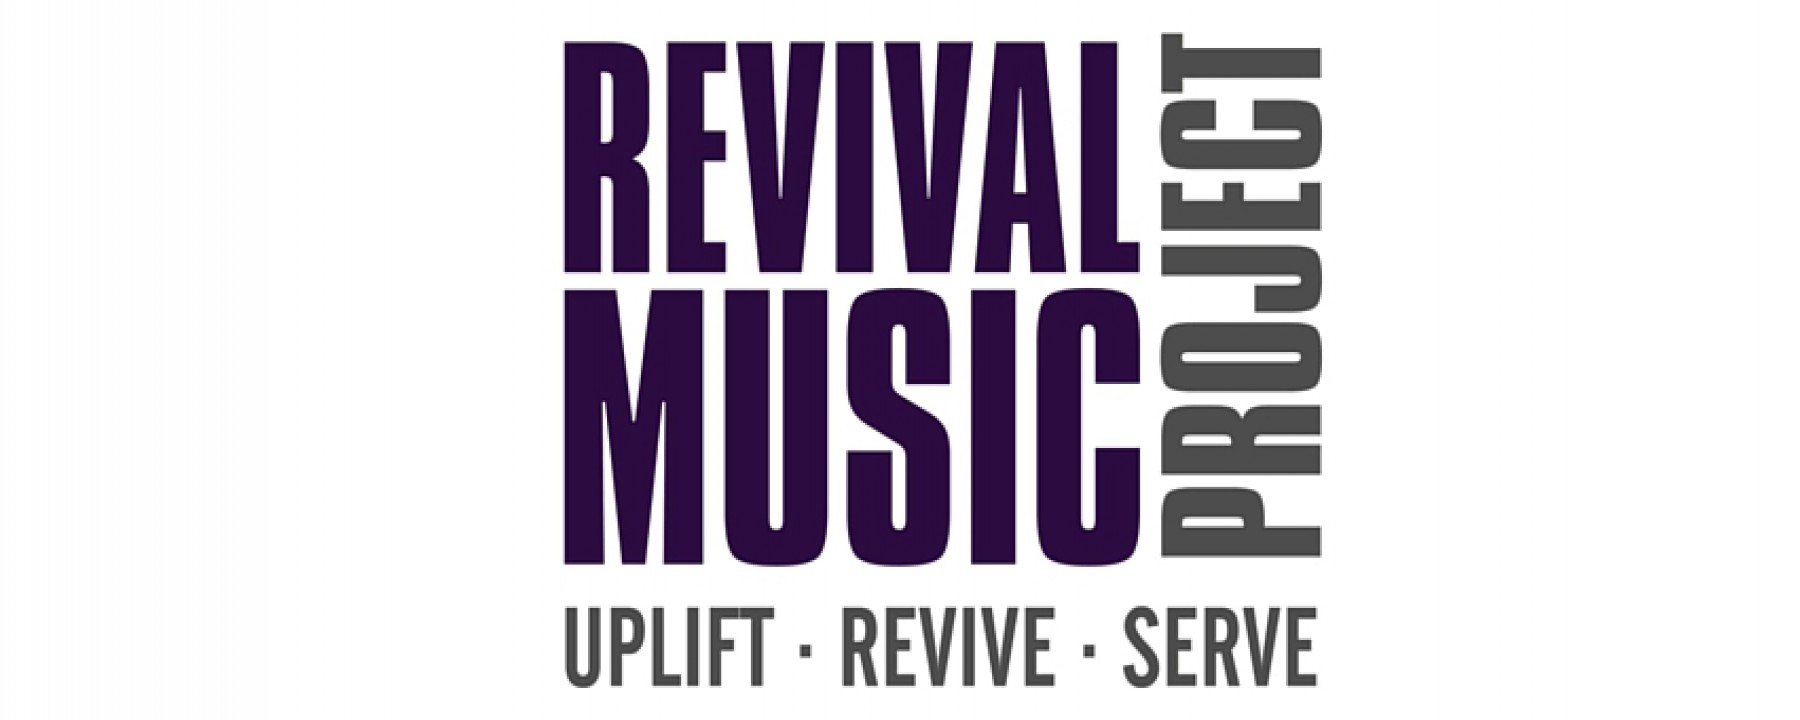 Revival Music Project